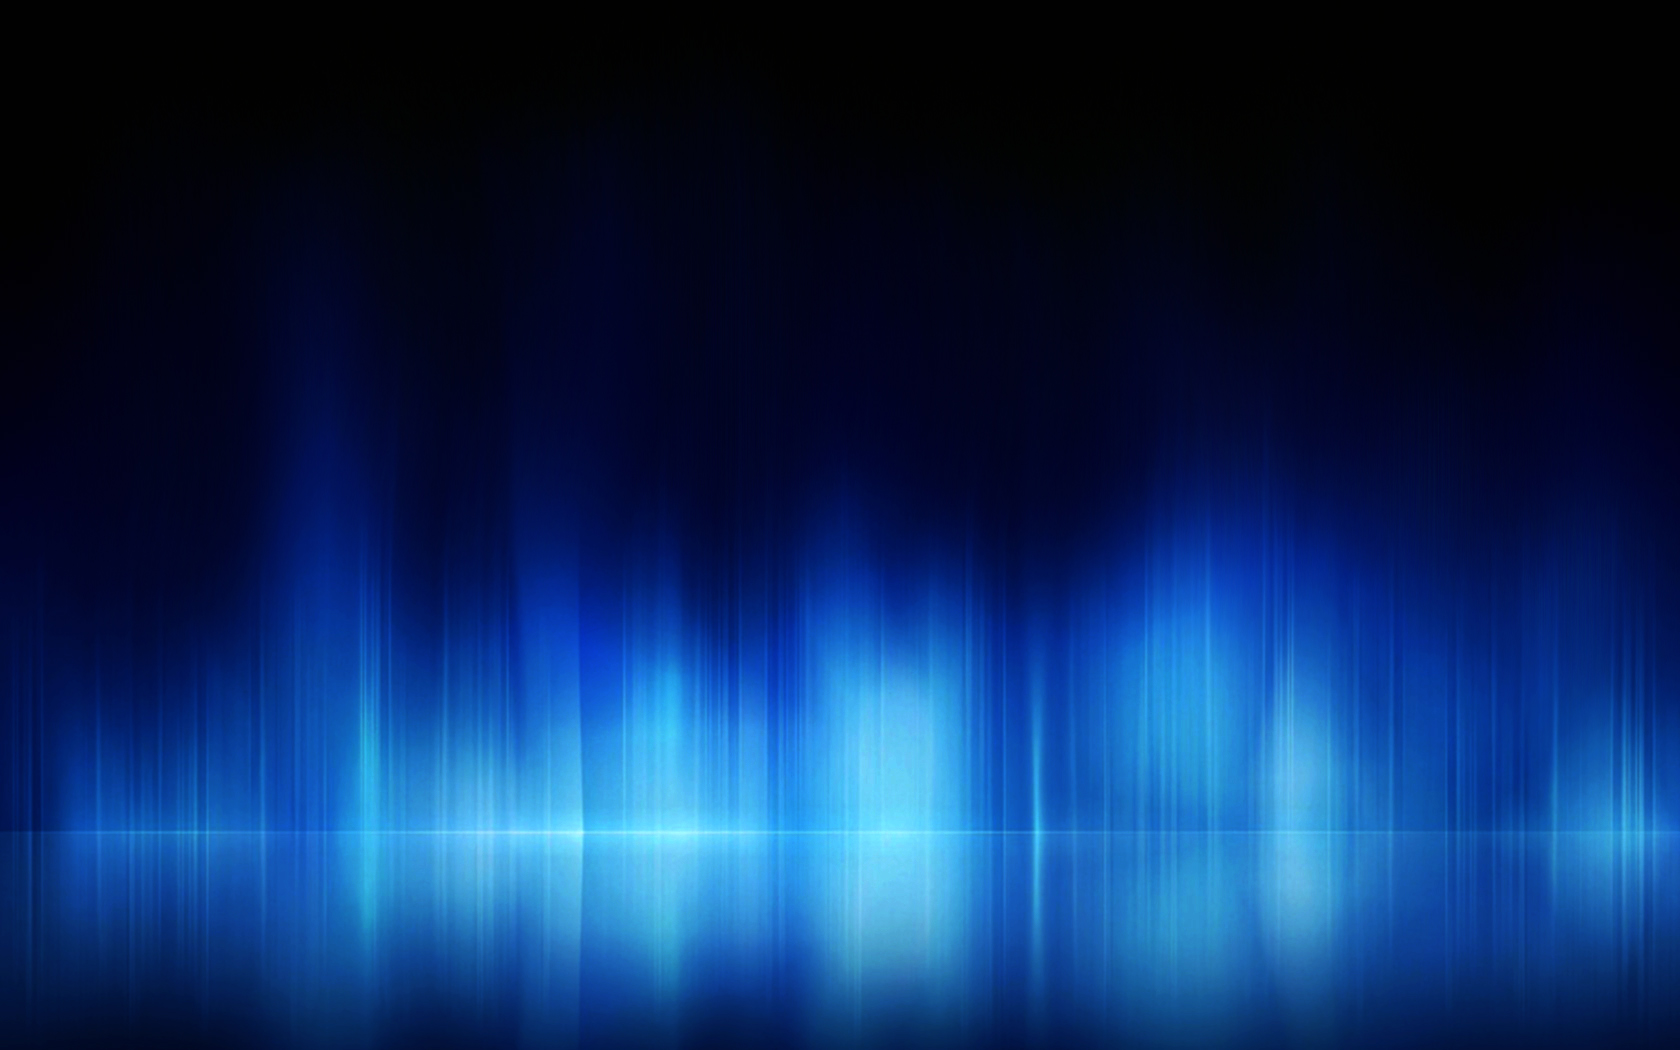 Blue Wallpaper and Background | 1680x1050 | ID:48076